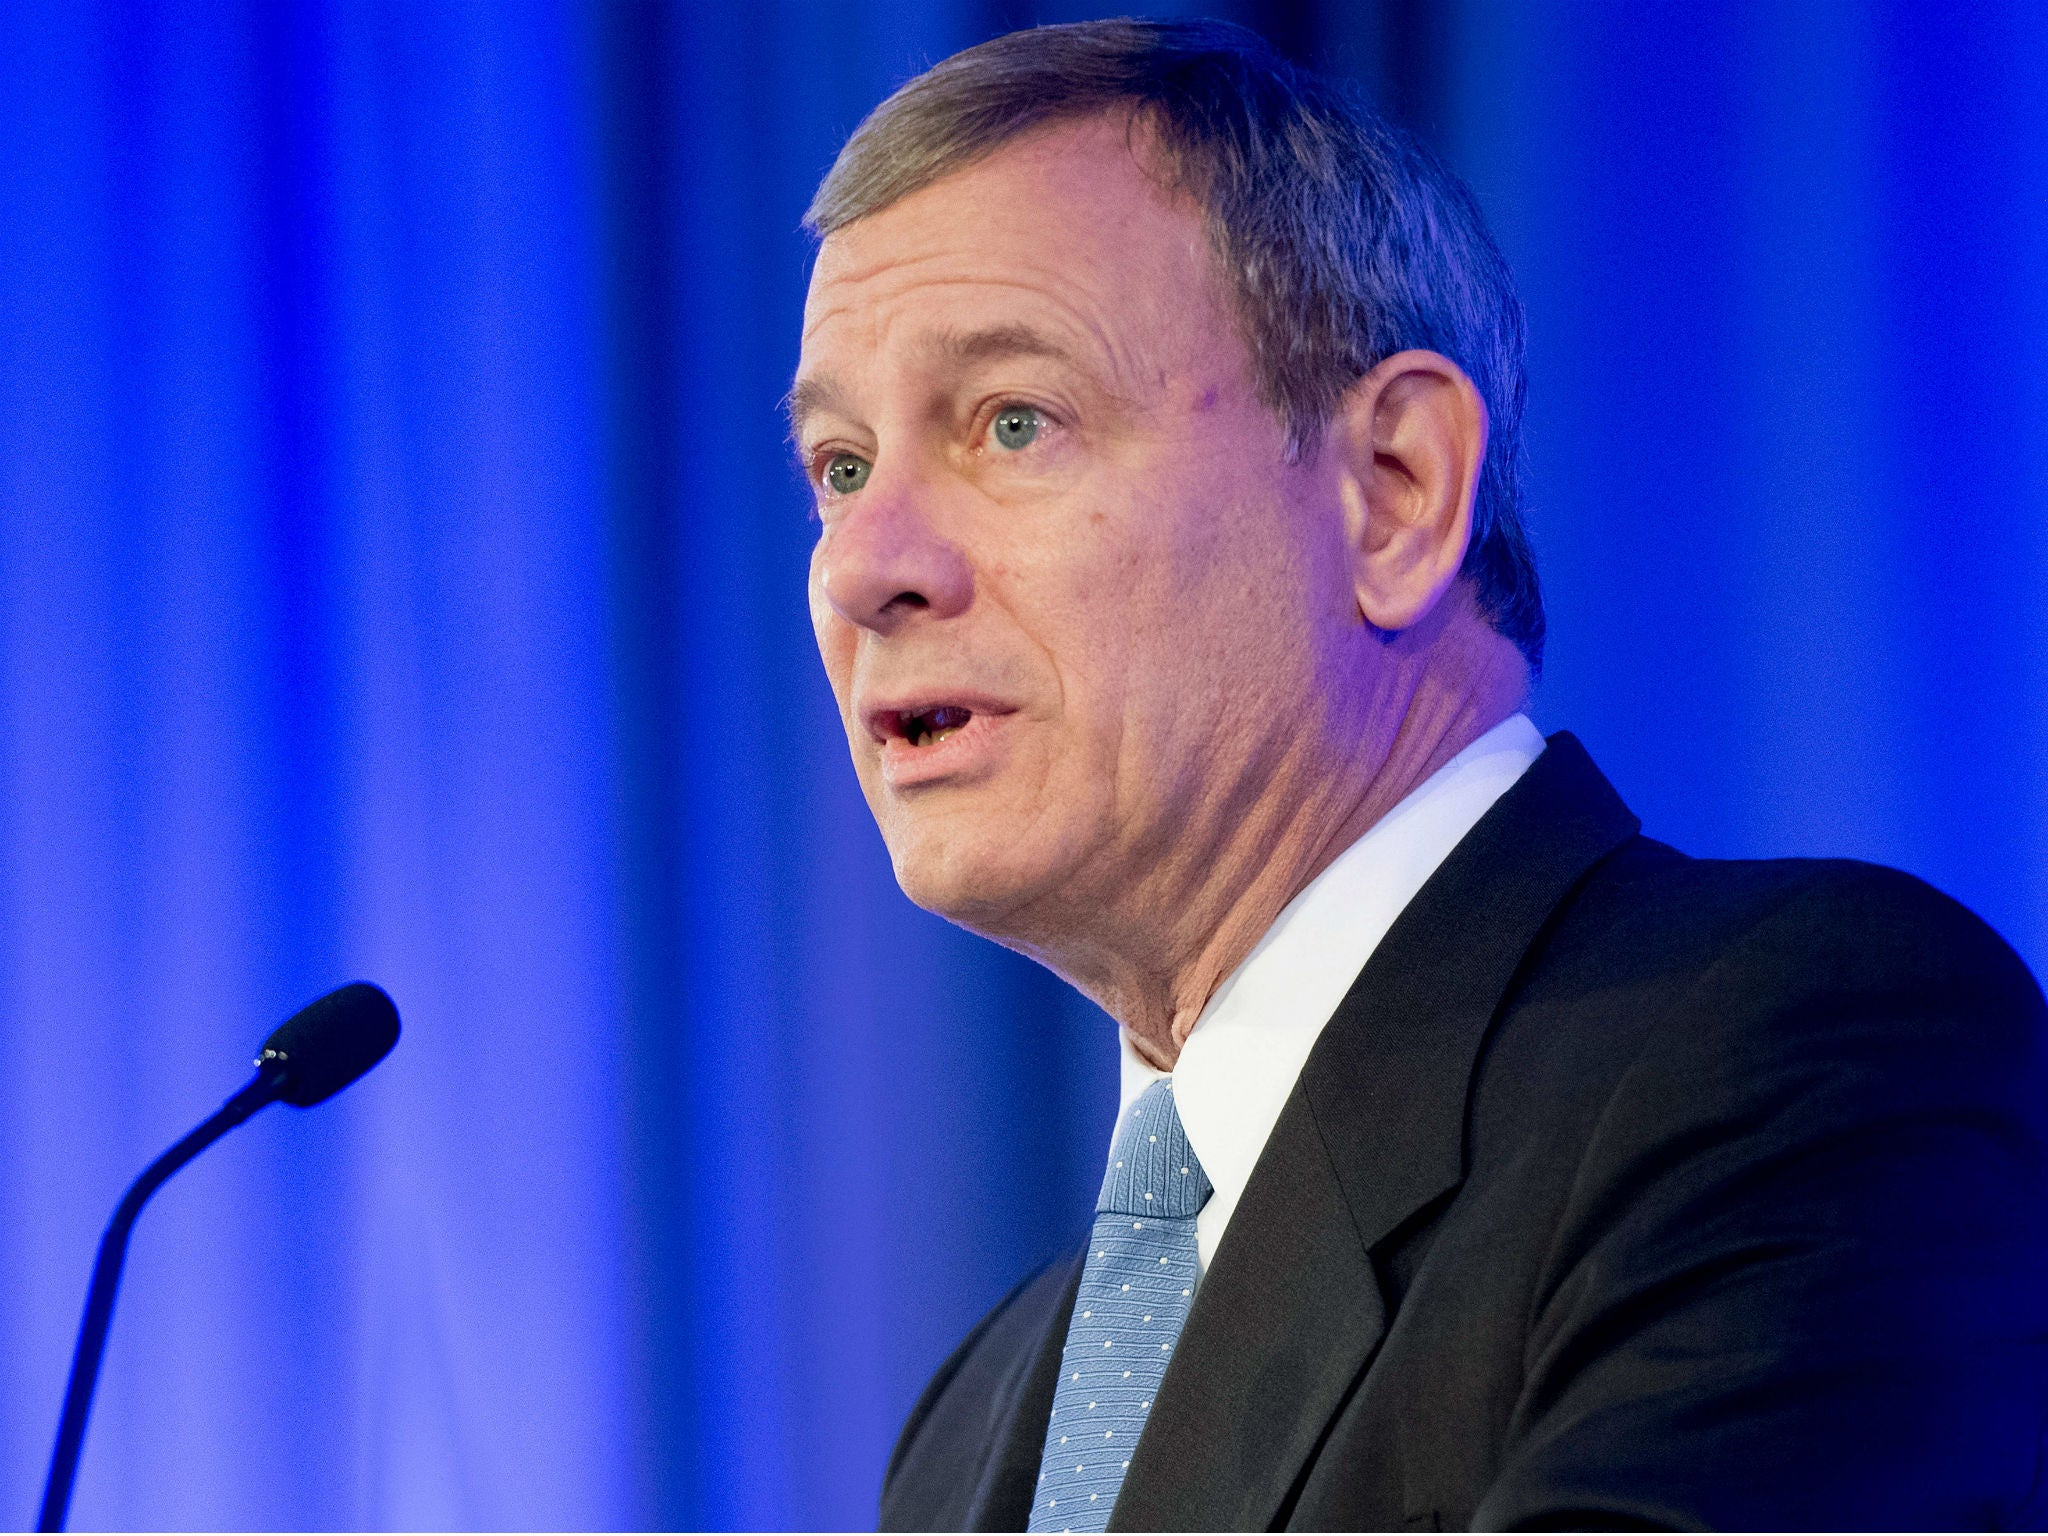 Chief justice John Roberts hits out at Trump 'Obama judge' remark in unprecedented criticism of president